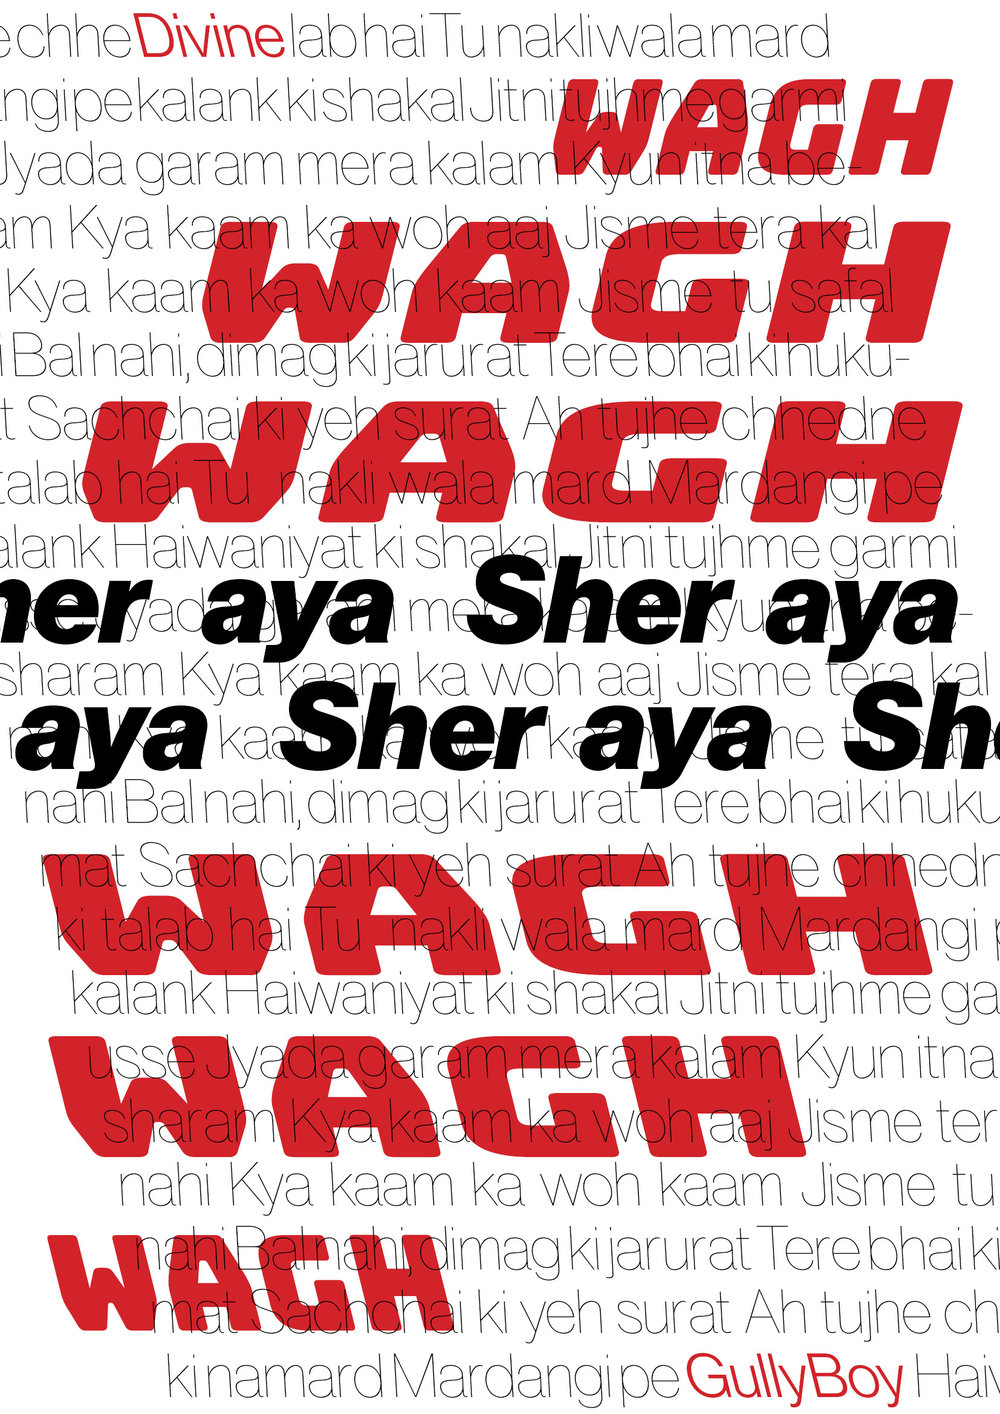 Posters designed with cheesy Bollywood lyrics or Hip Hop stars from India